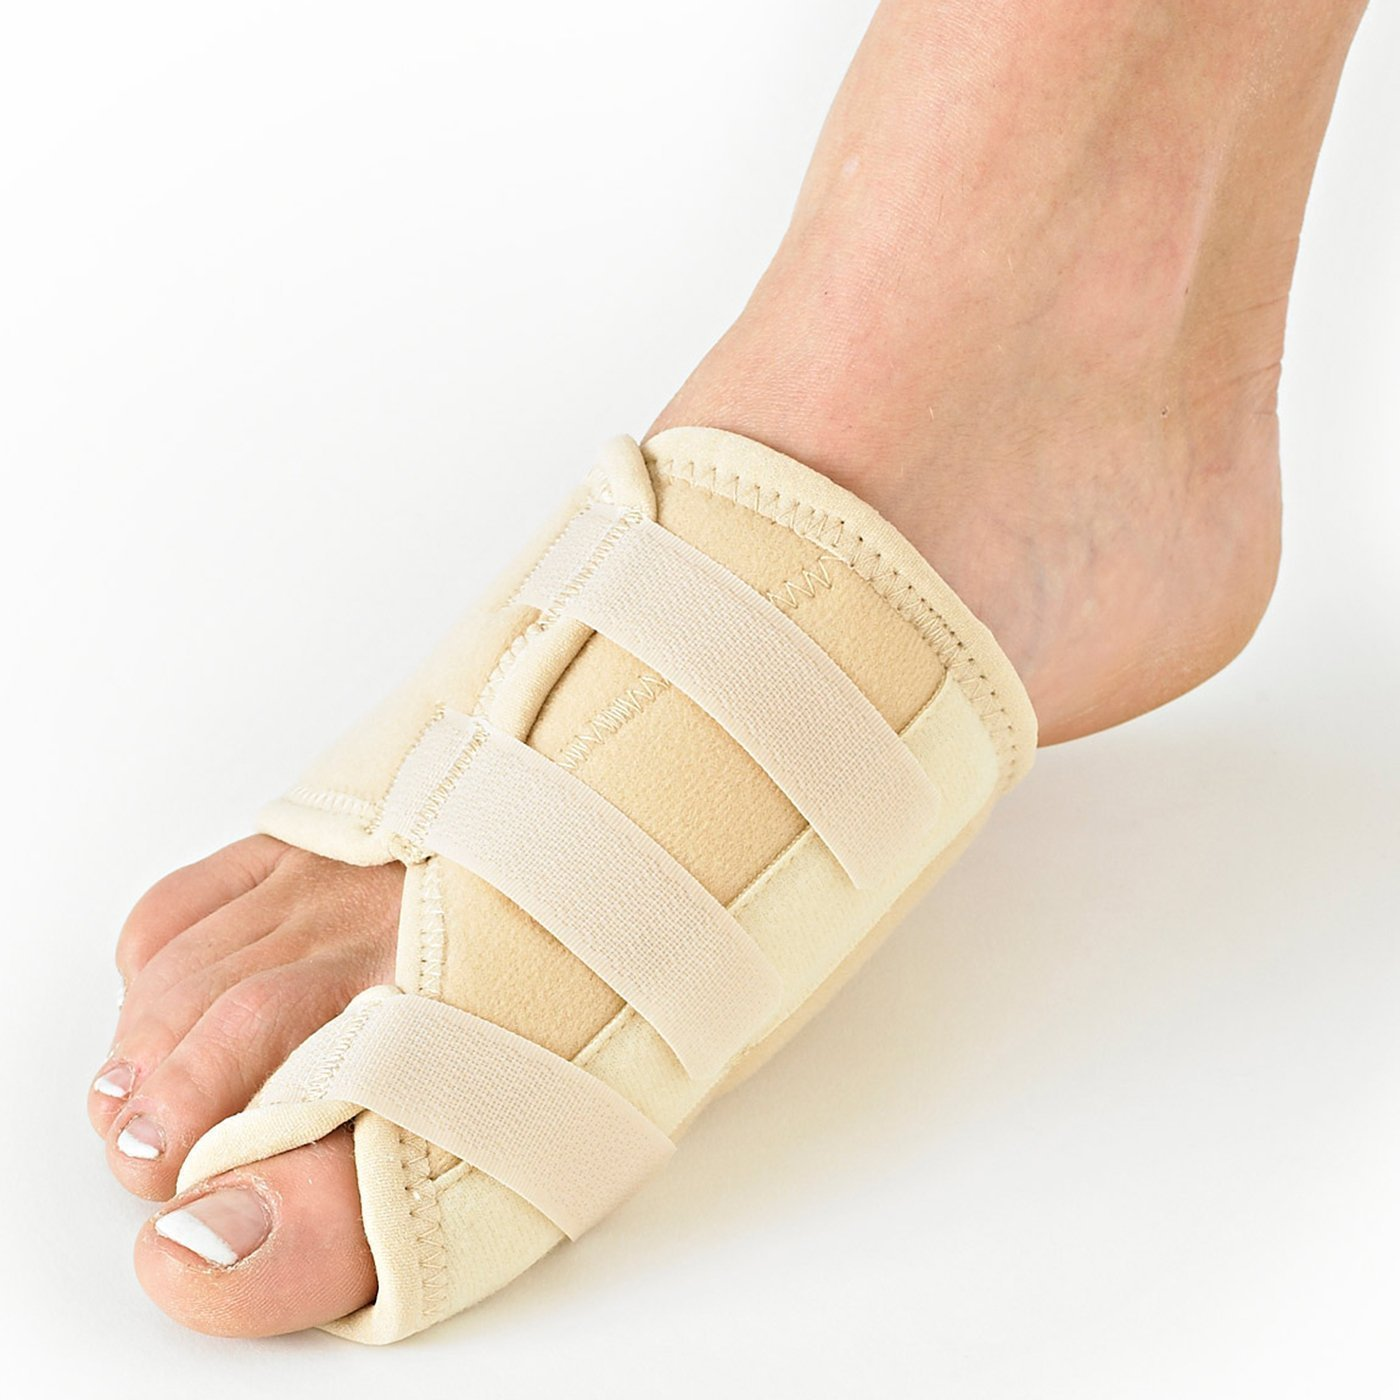 Bunion Corrector - Bunion Relief Splint for Crooked Toes Alignment & Big Toe Joint Pain Relief